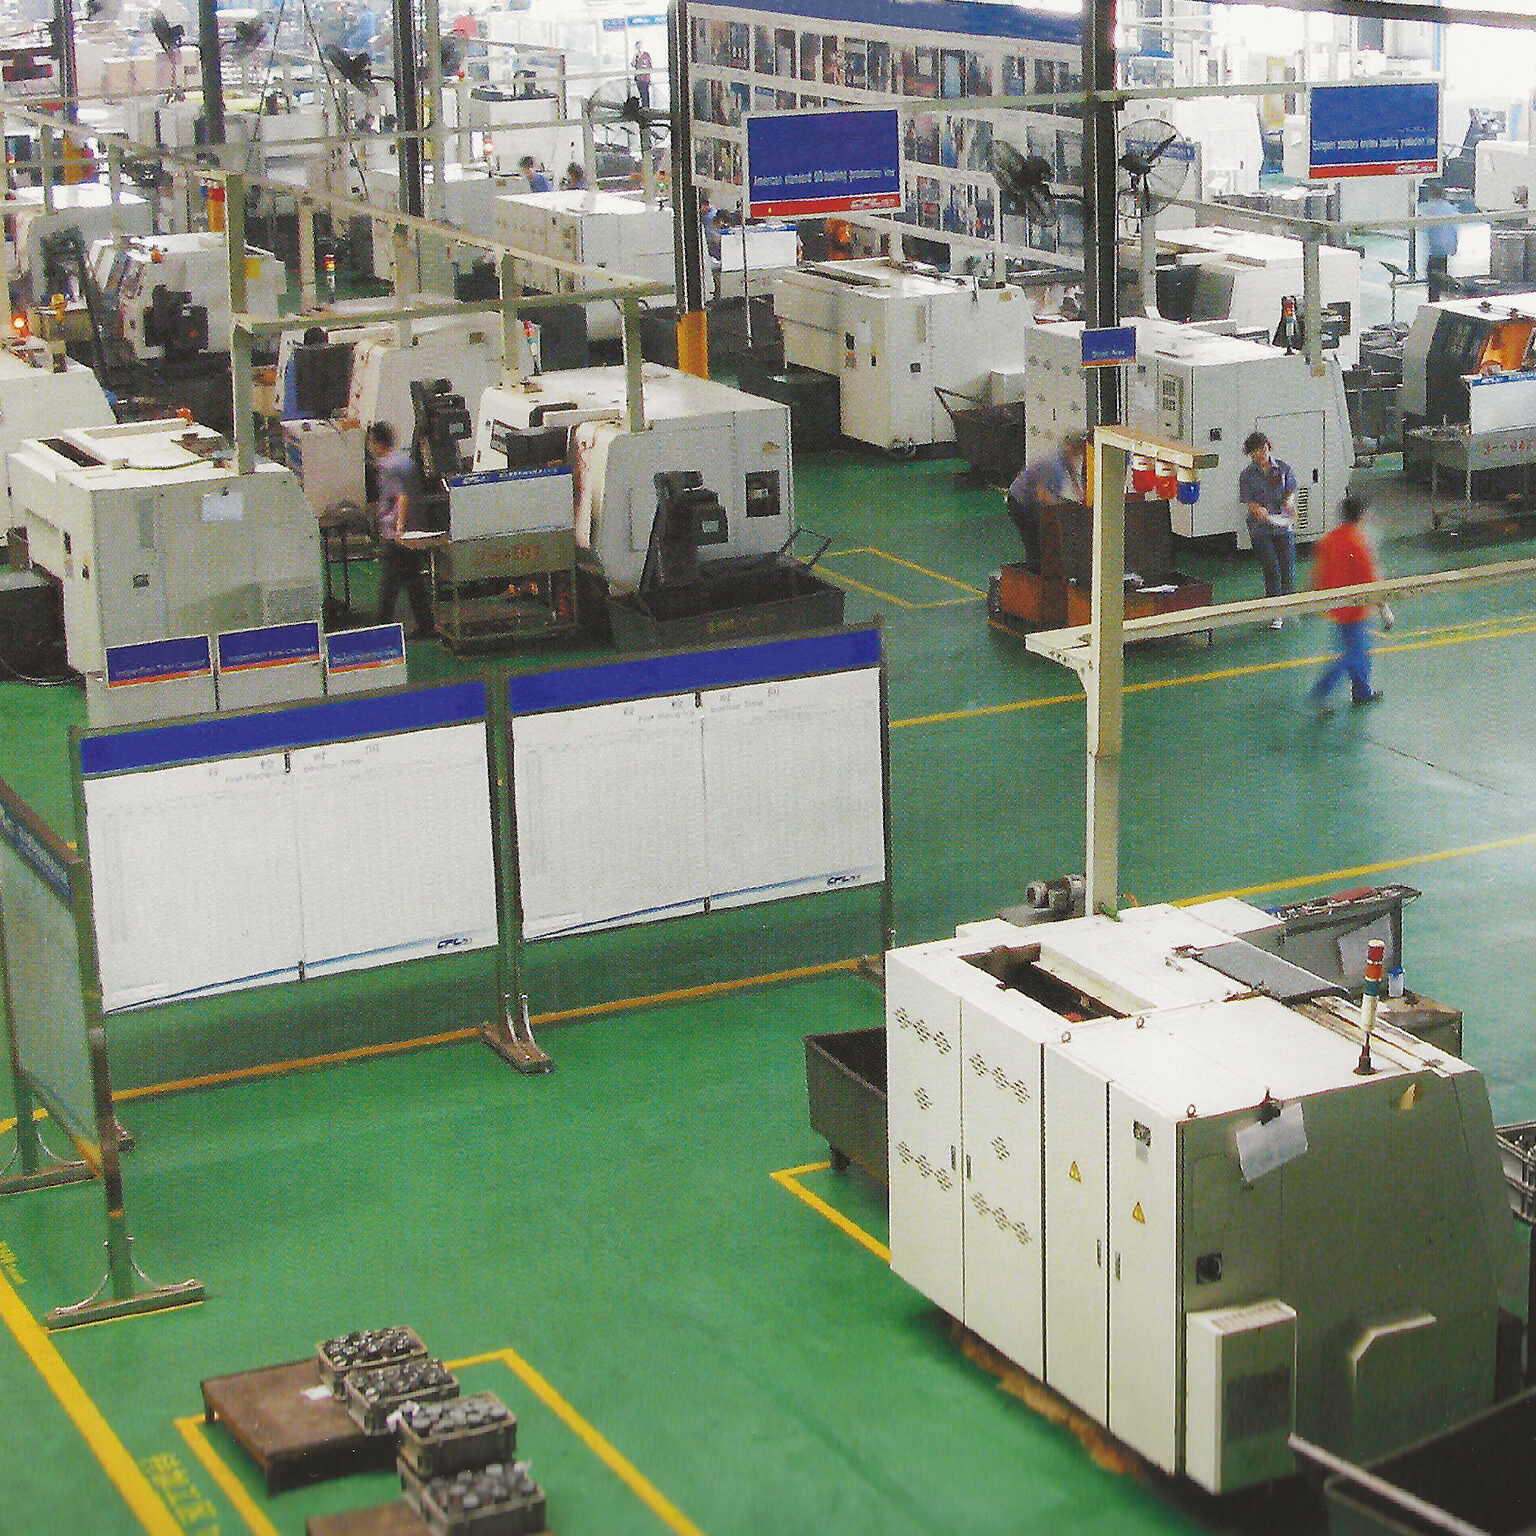 Lathe banks and machining centers